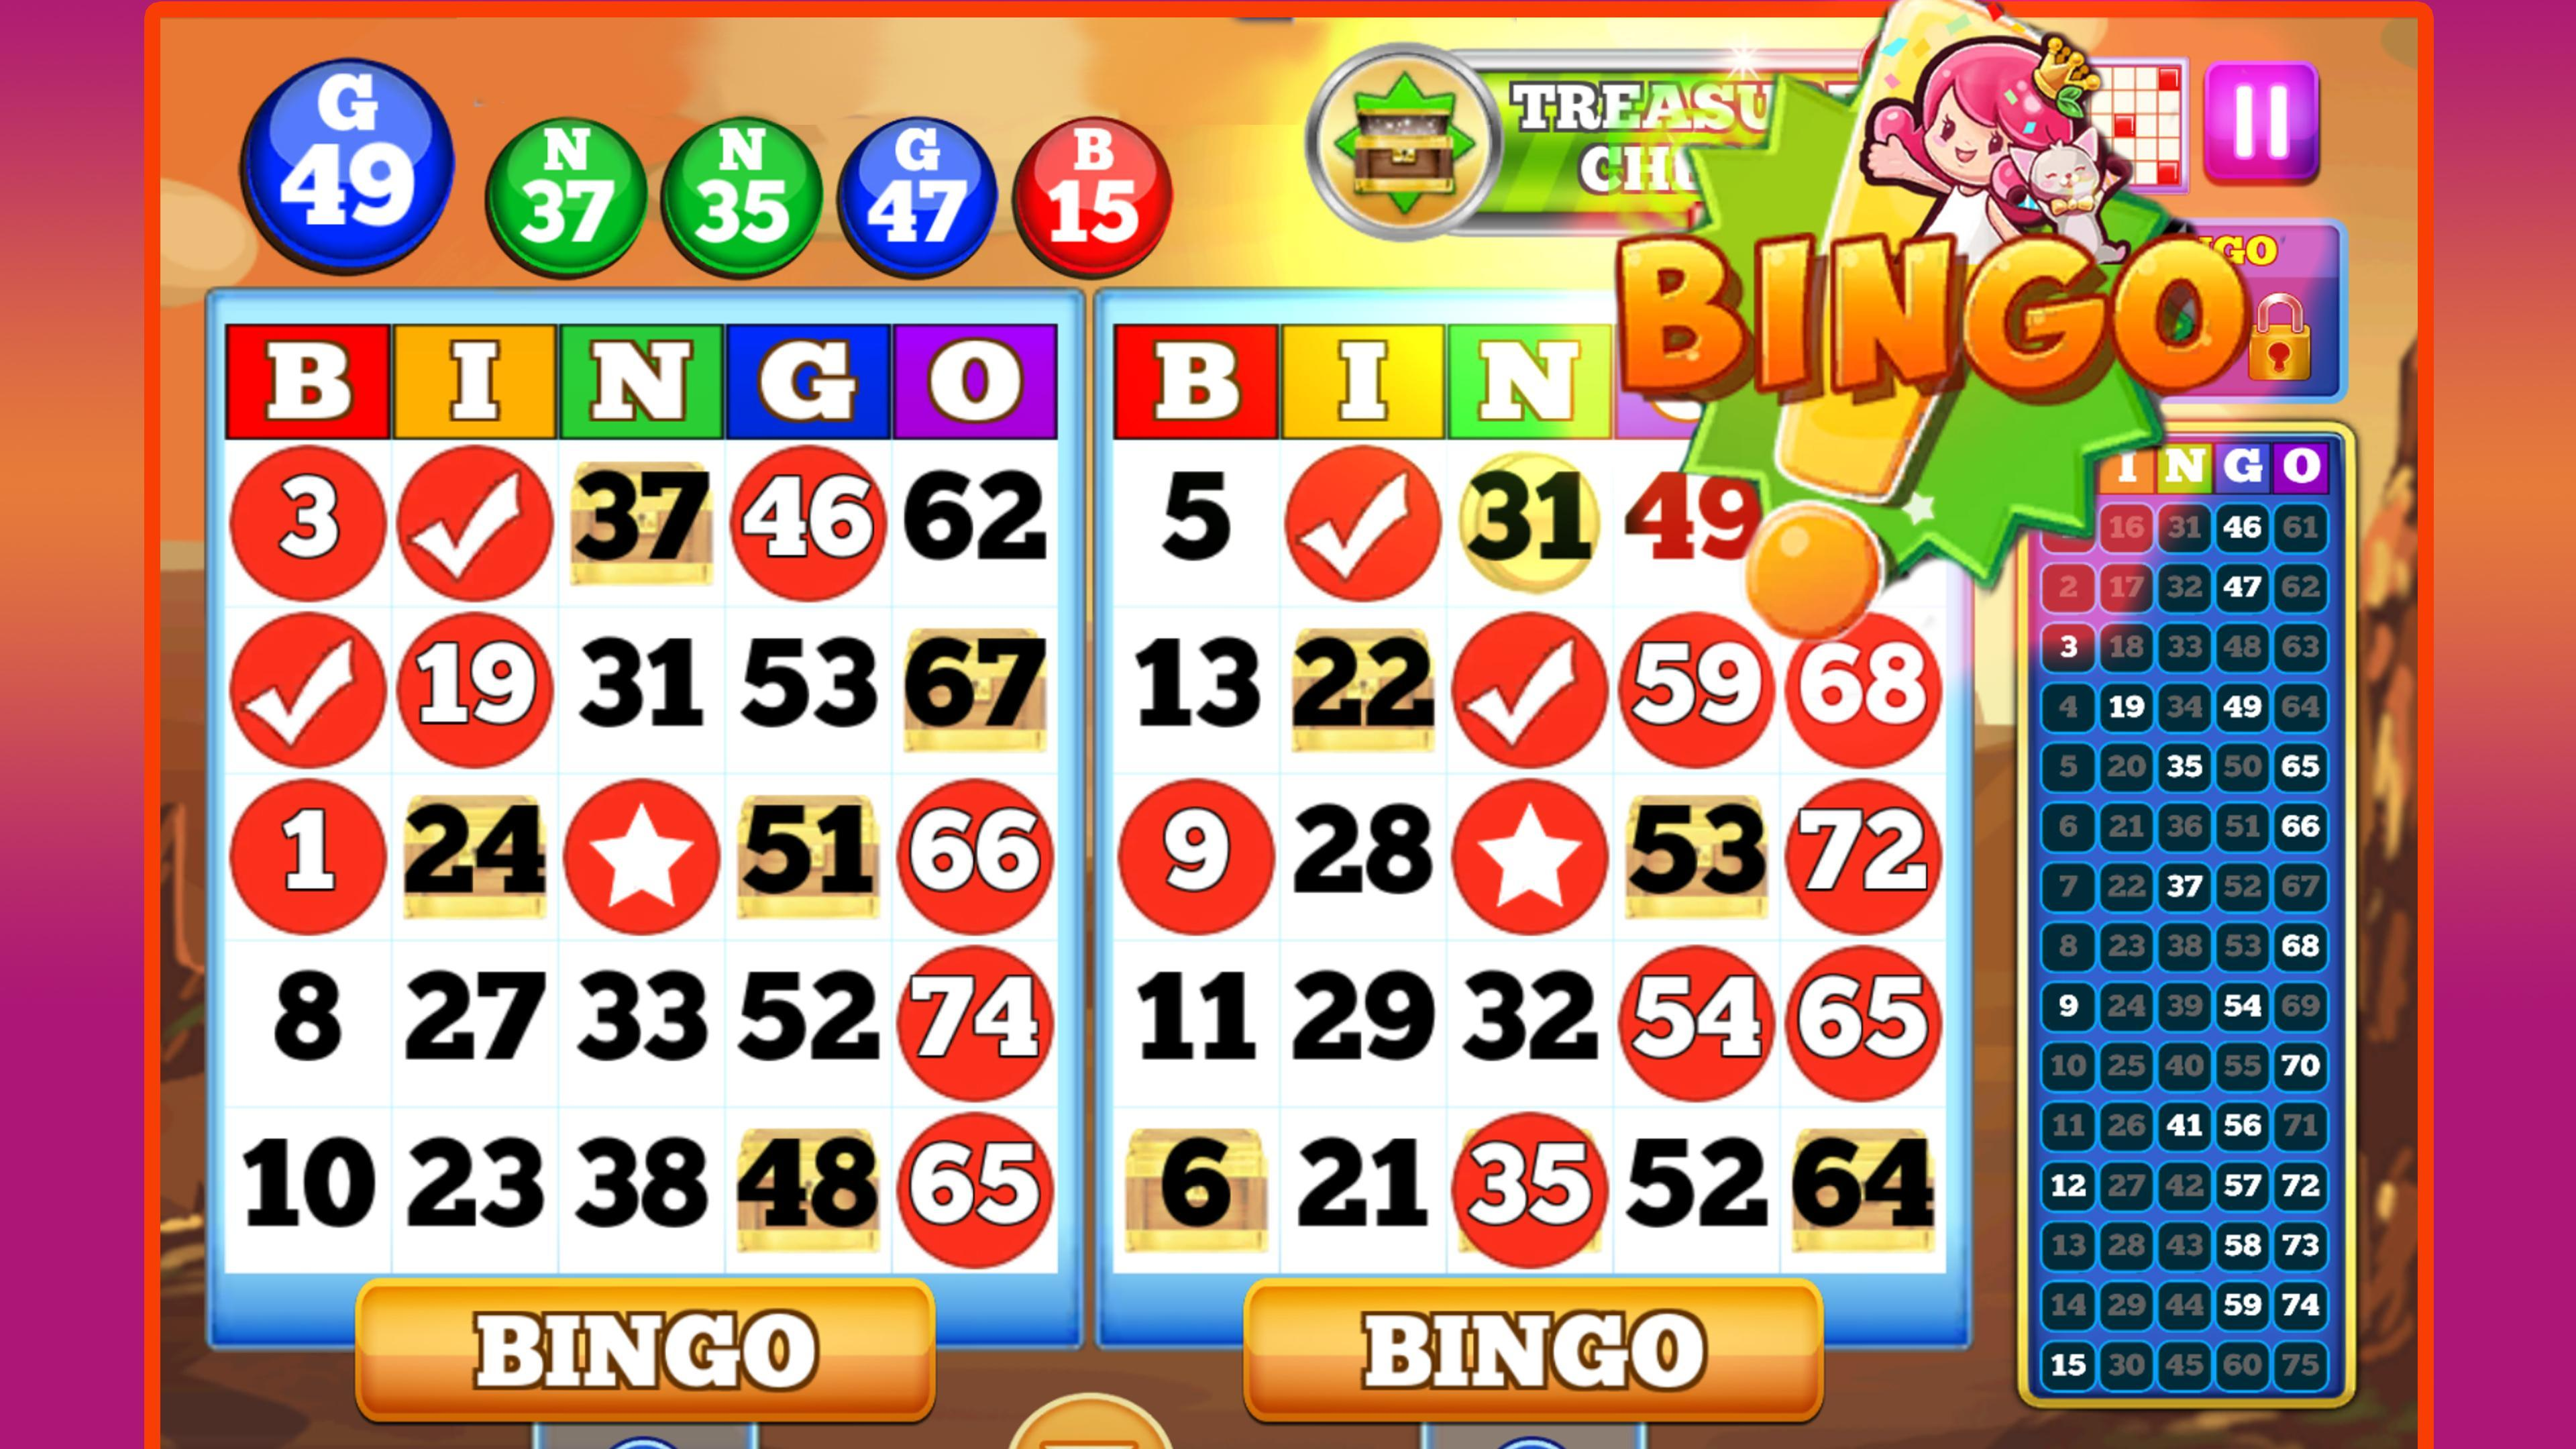 I want to play bingo free on penguin points